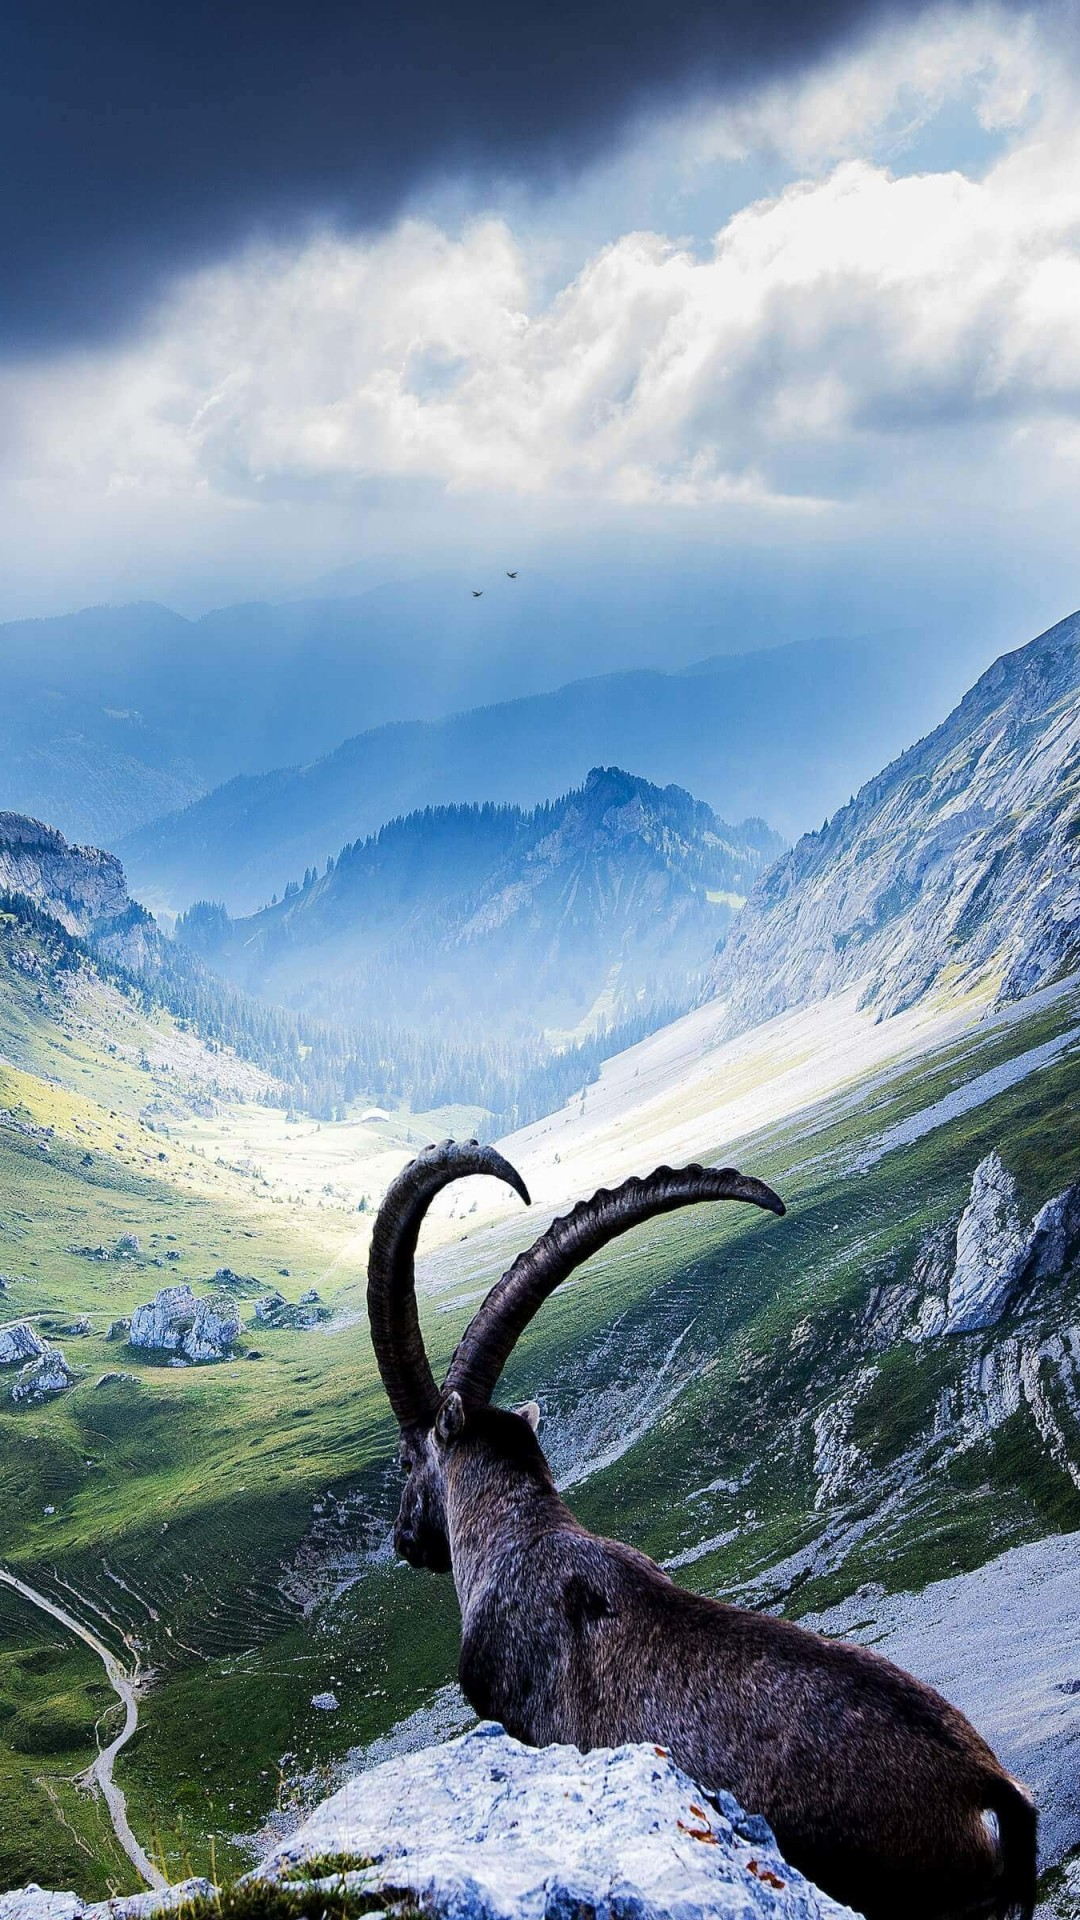 Goat at Pilatus, Switzerland Wallpaper for SAMSUNG Galaxy S5